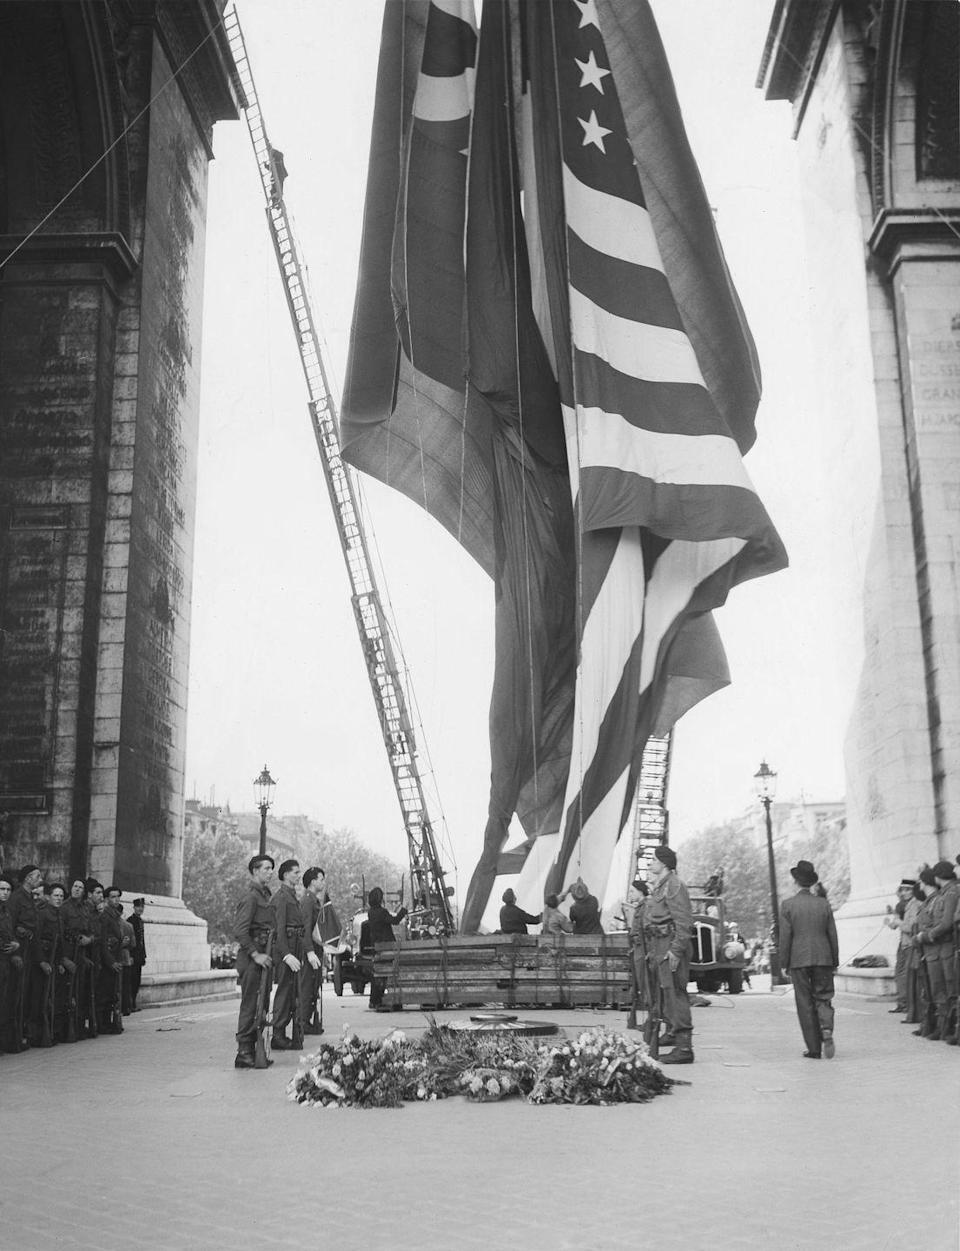 <p>The flags of Russia, France, China, Great Britain, and the United States are hoisted inside Paris' famous Arc de Triomphe following the surrender announcement.</p>